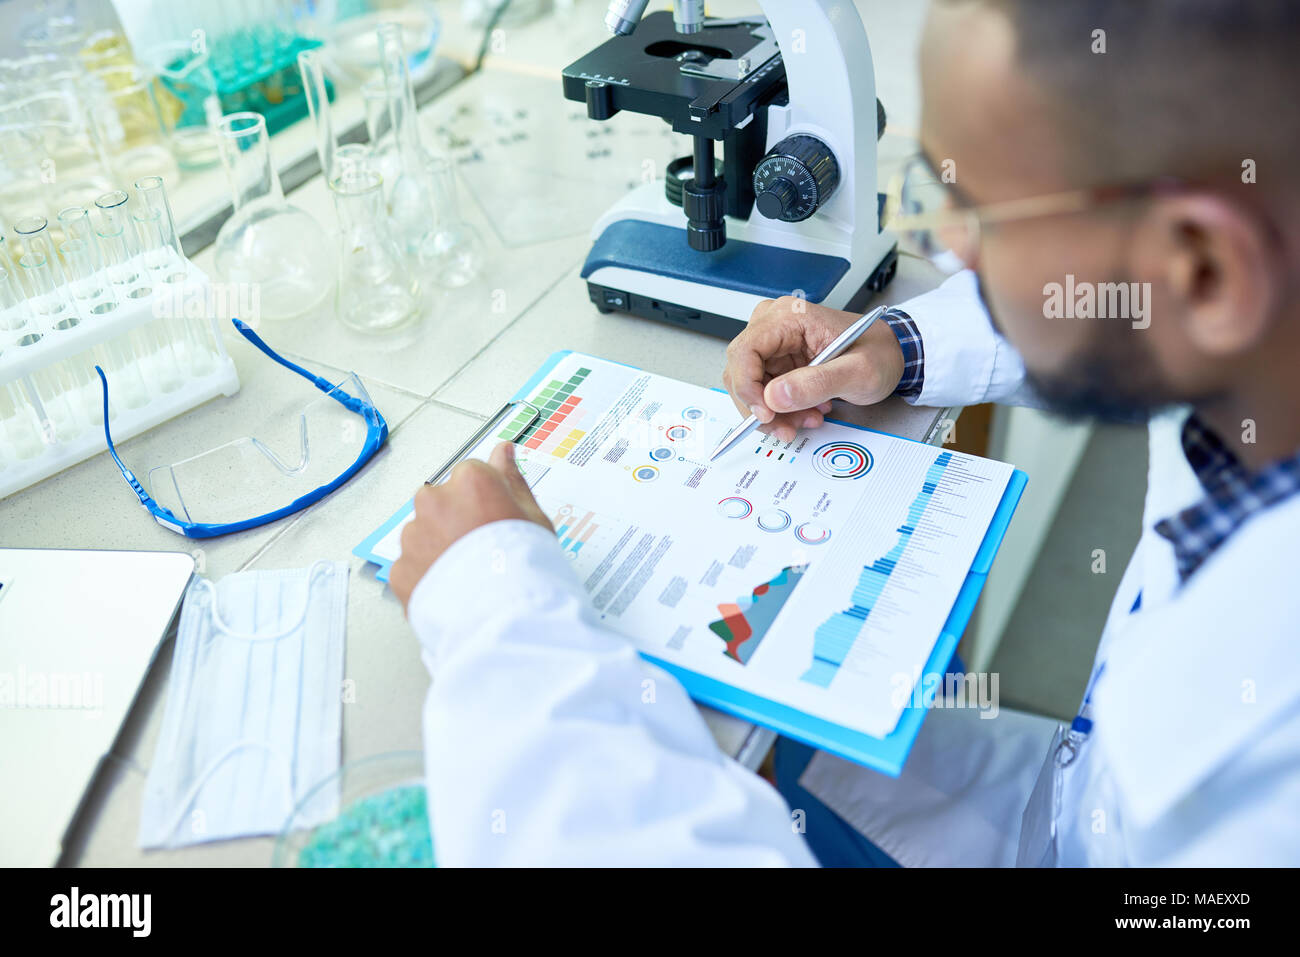 Arabian scientist analyzing research results - Stock Image